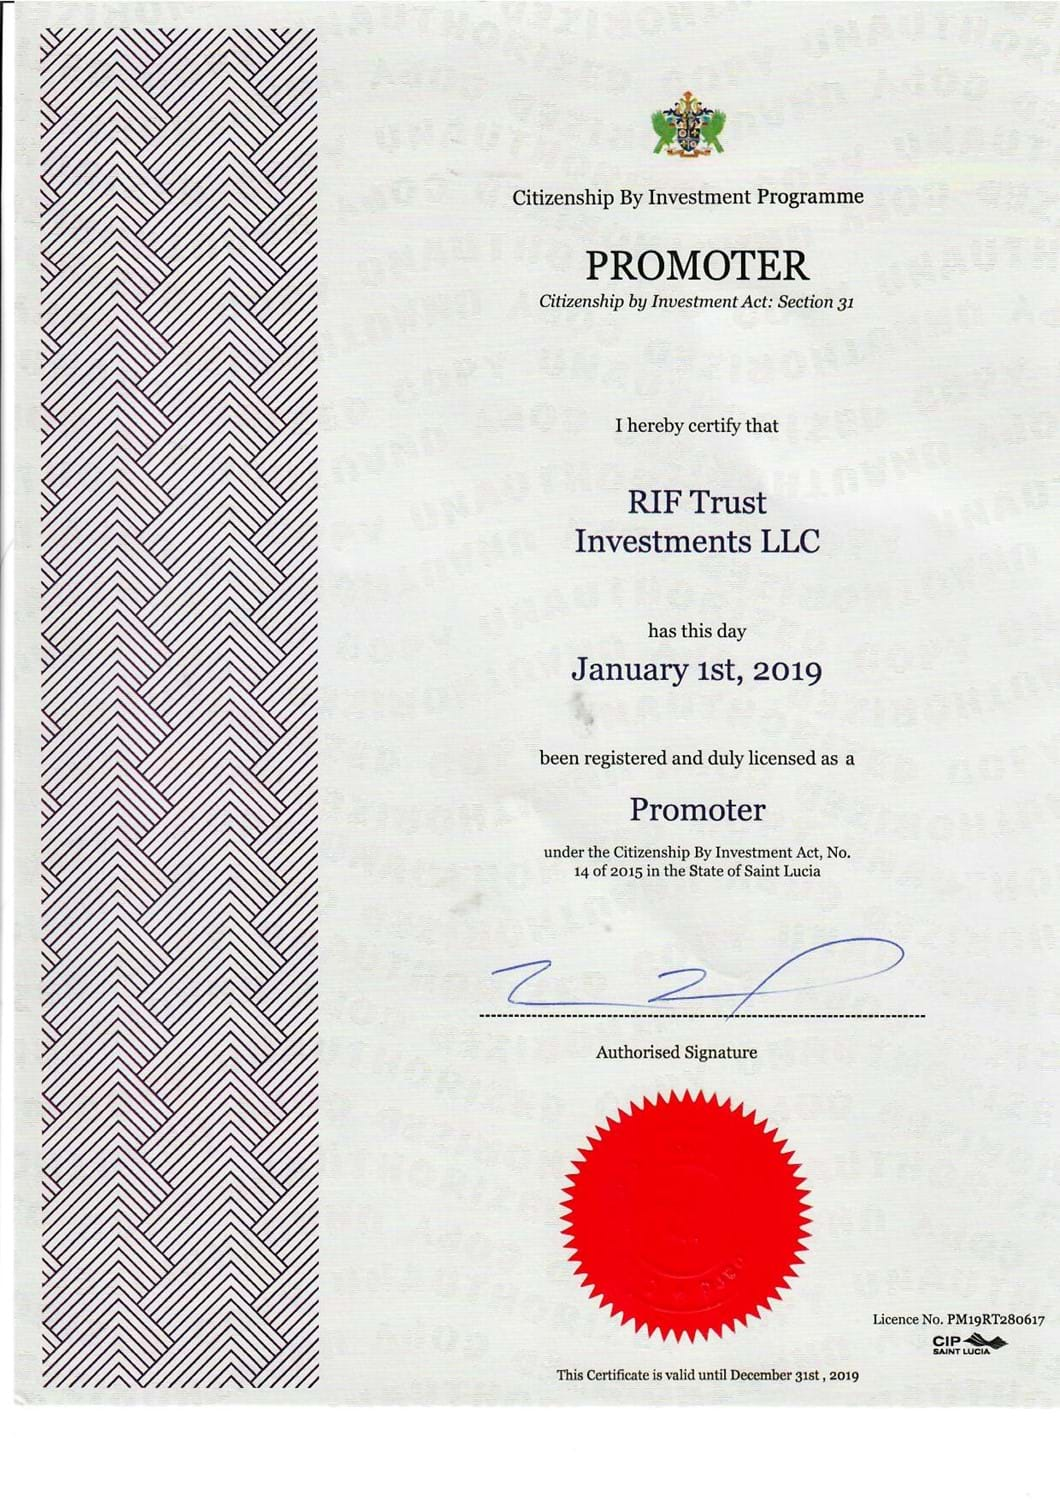 Citizenship by investment certificate